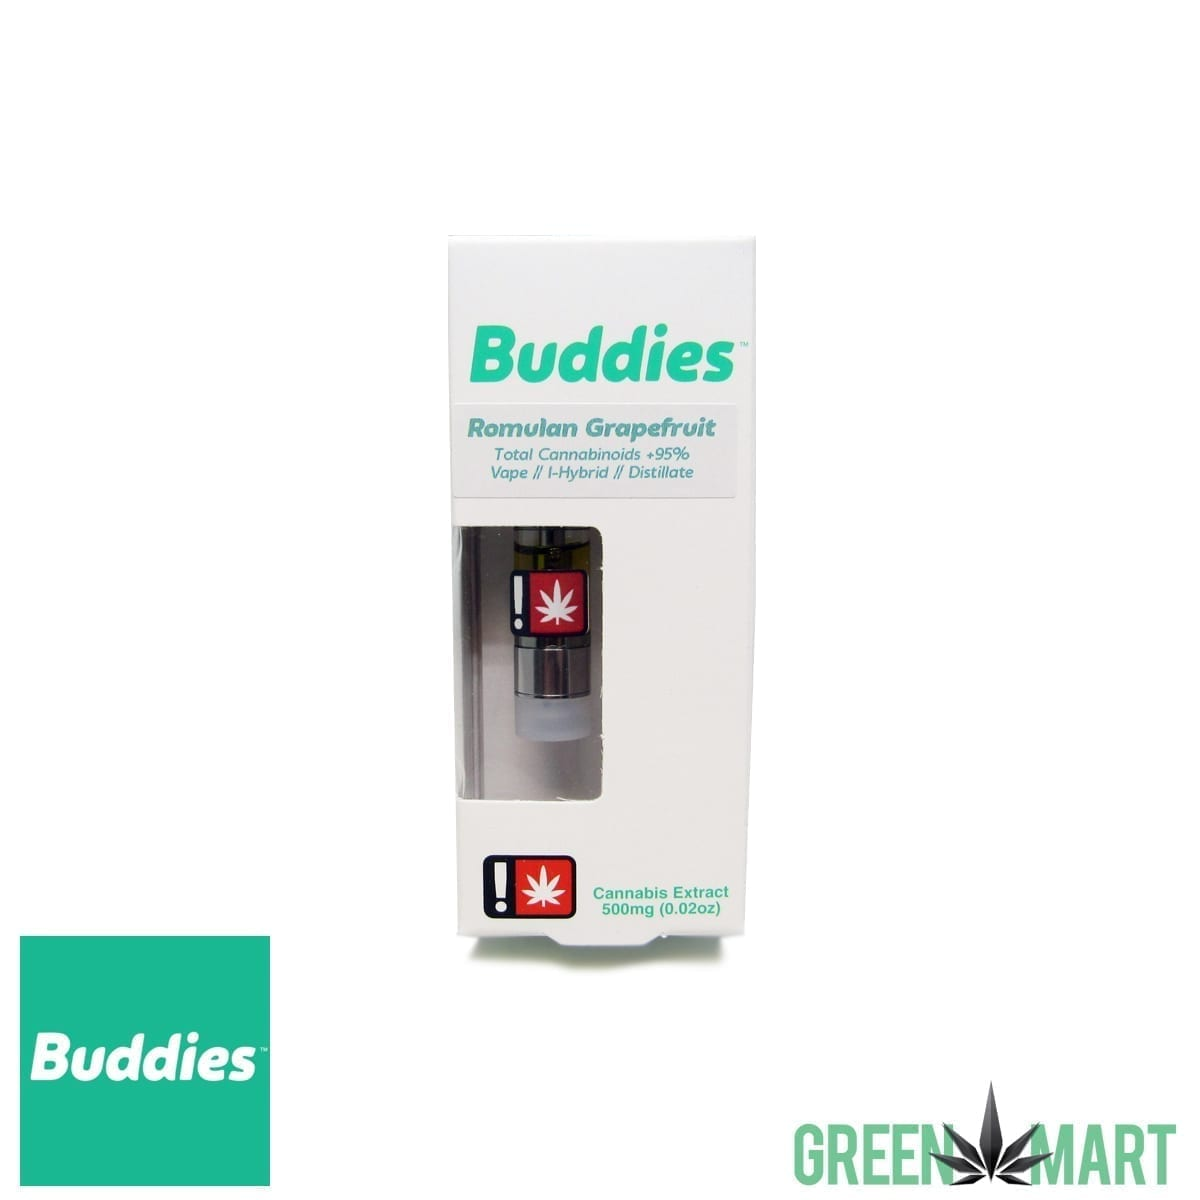 Buddies Brand Distillate Cartridge – Romulan Grapefruit – Green Mart